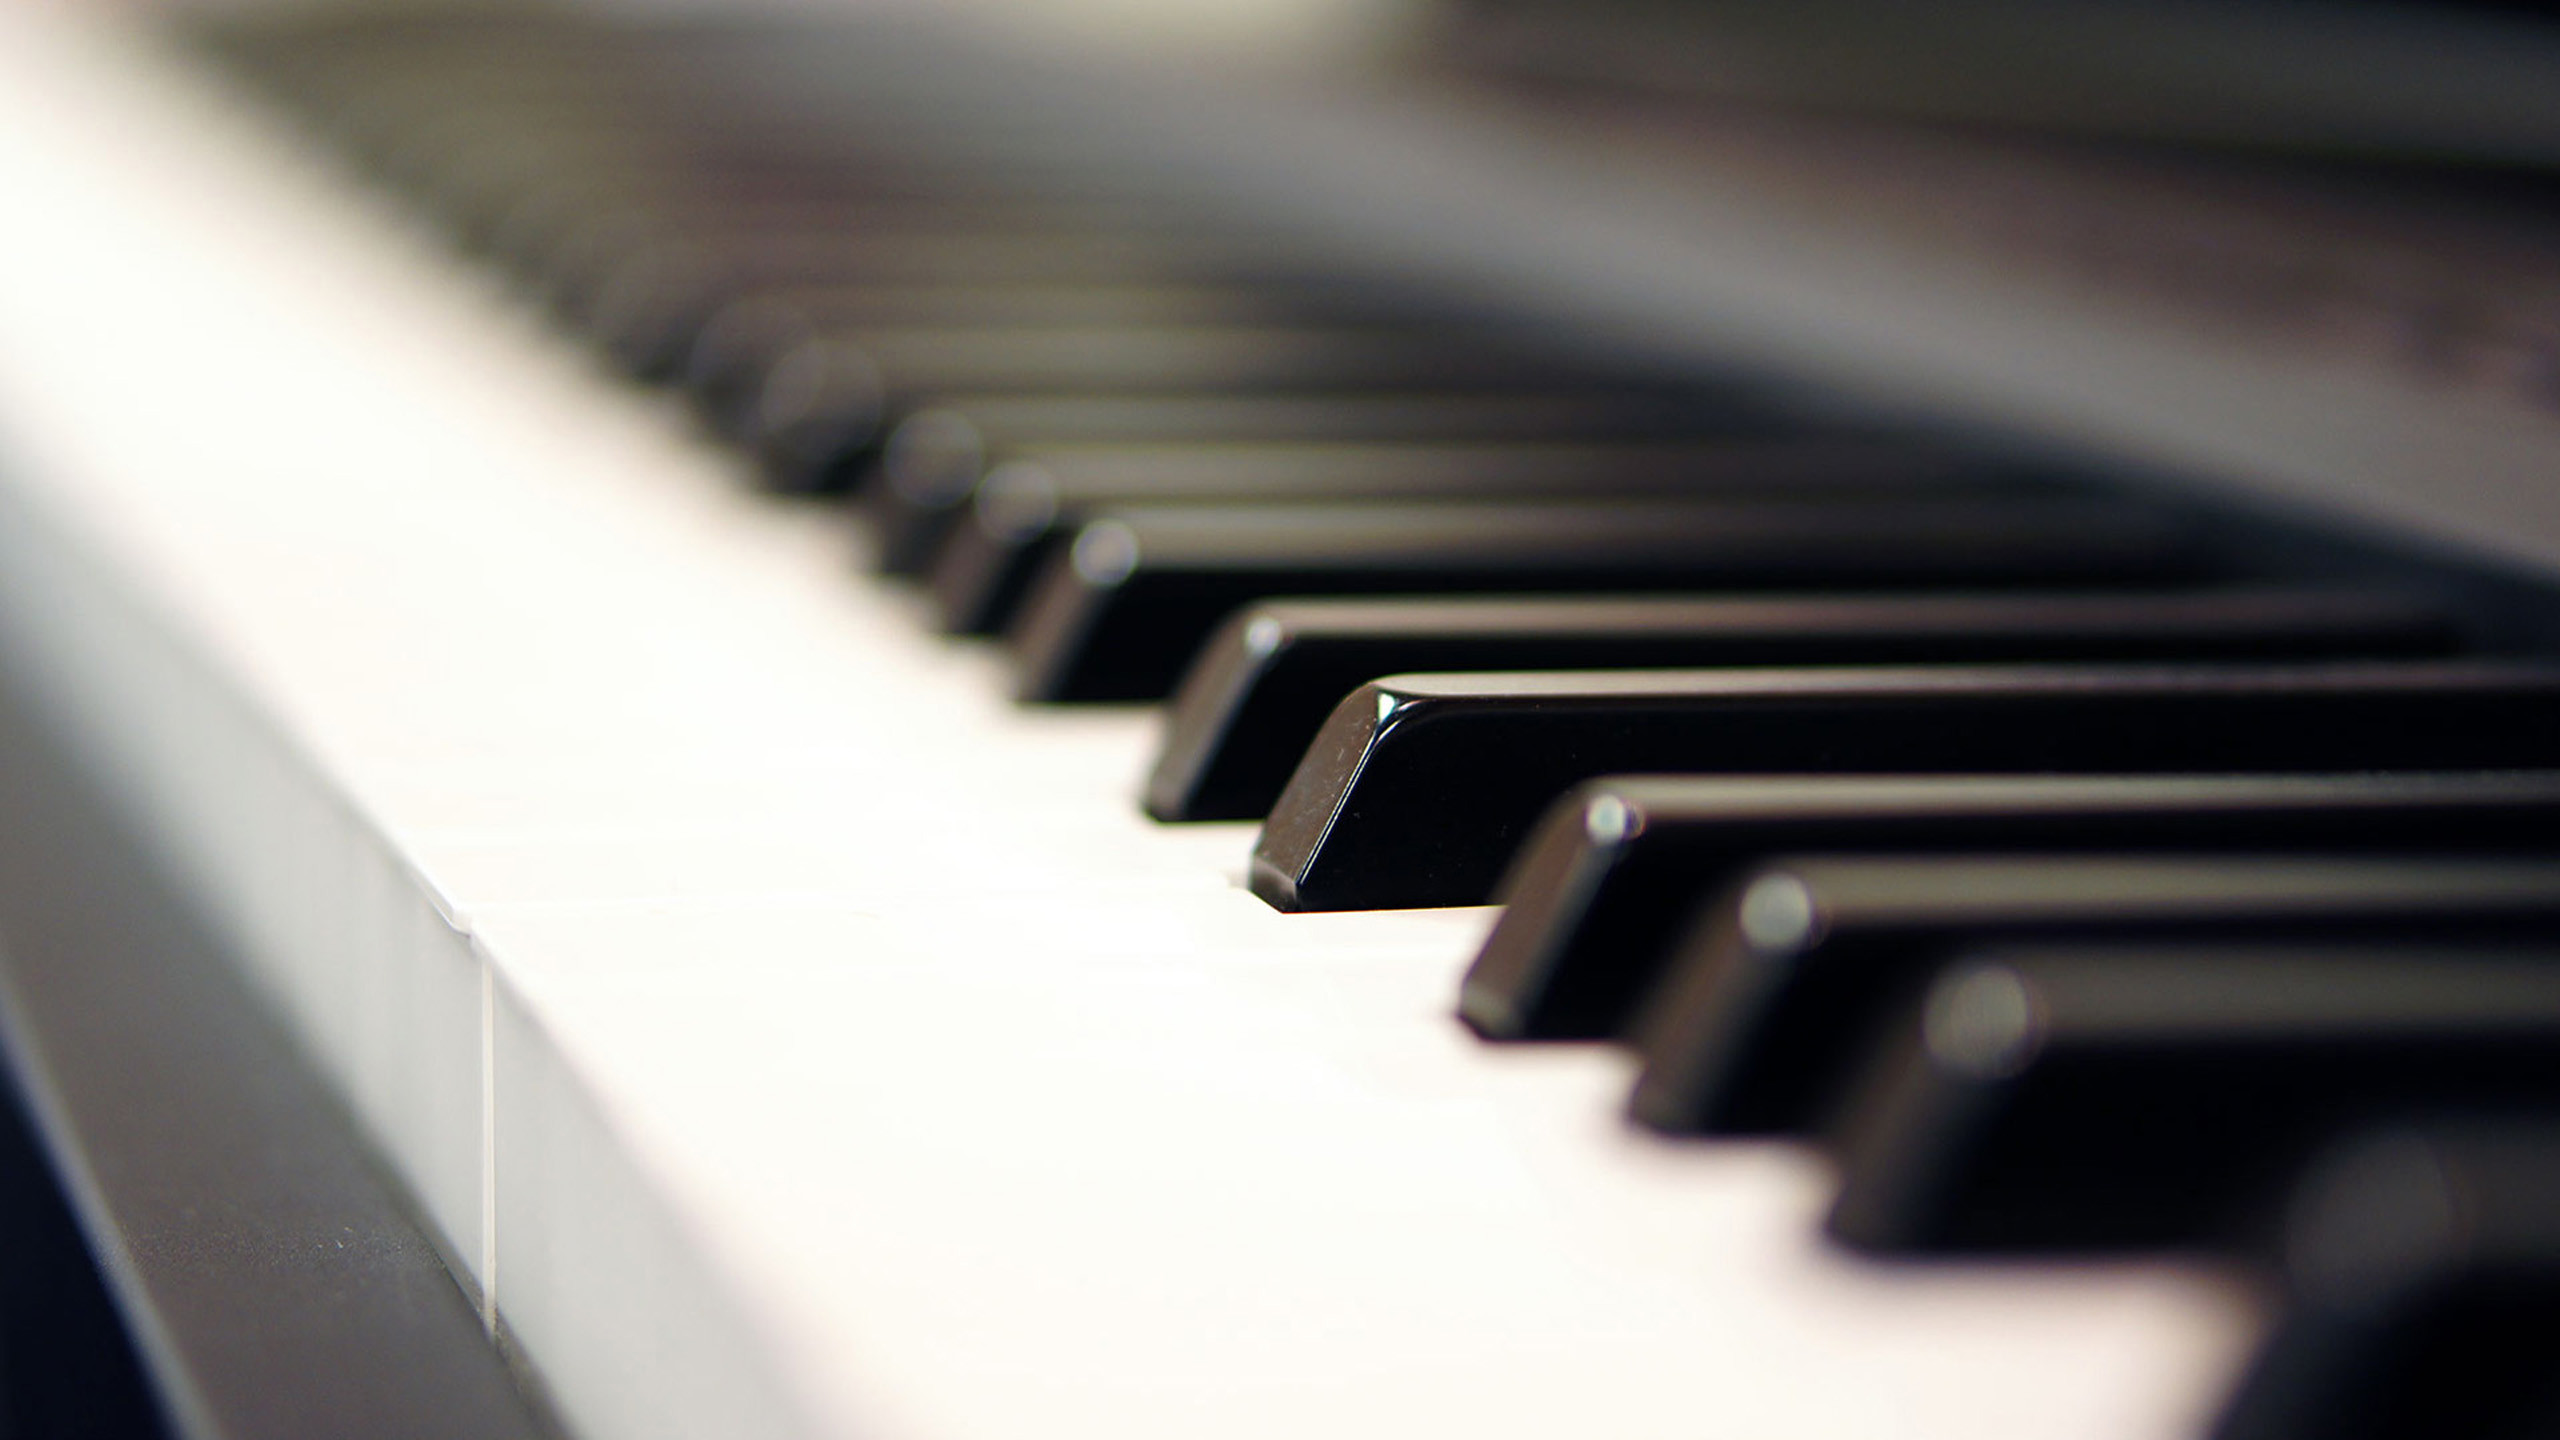 2560x1440 piano wallpaper 2